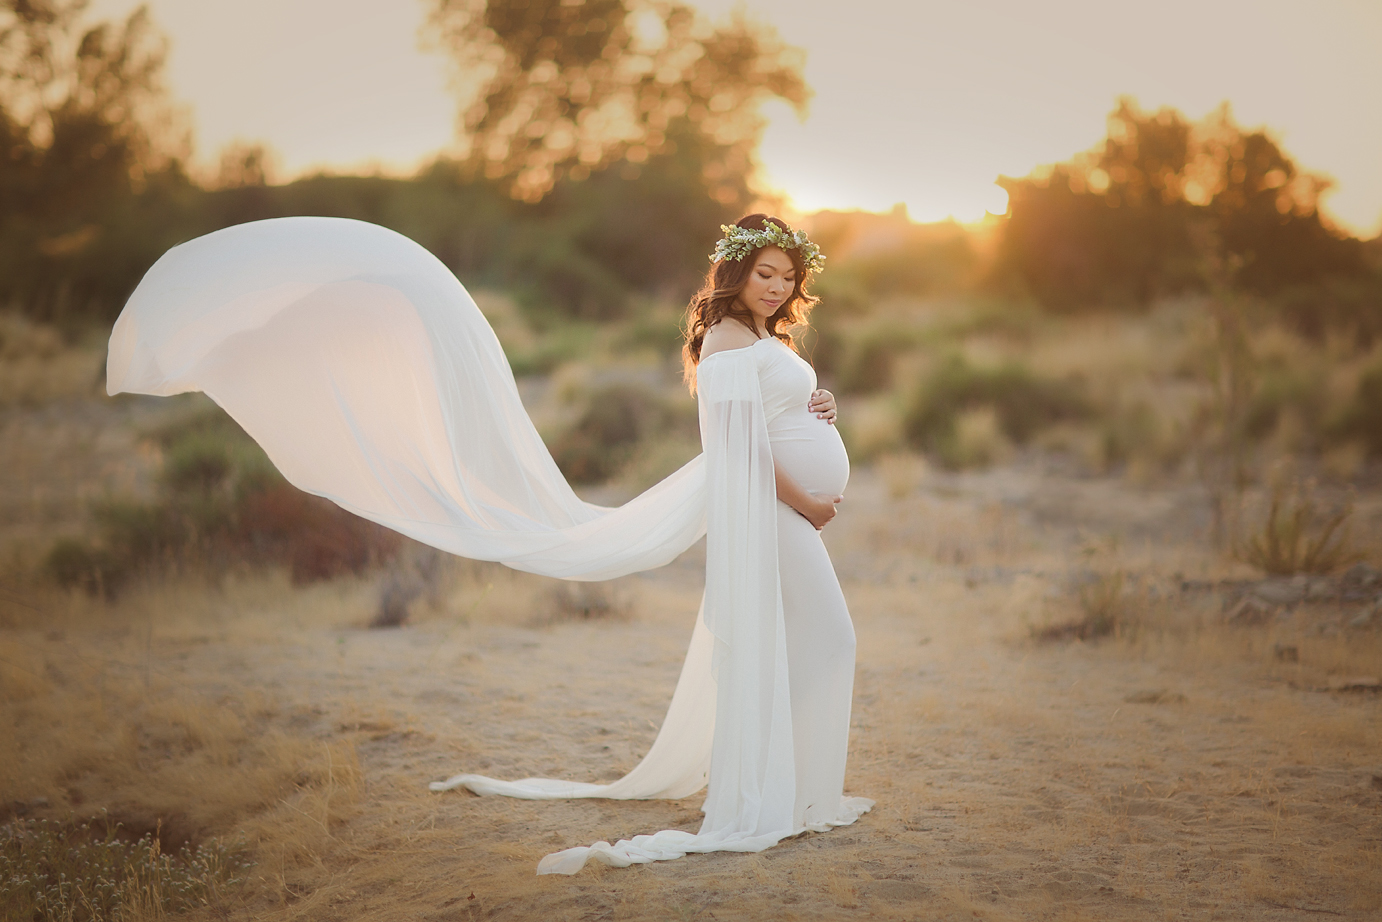 outdoor-maternity-mentoring-photography